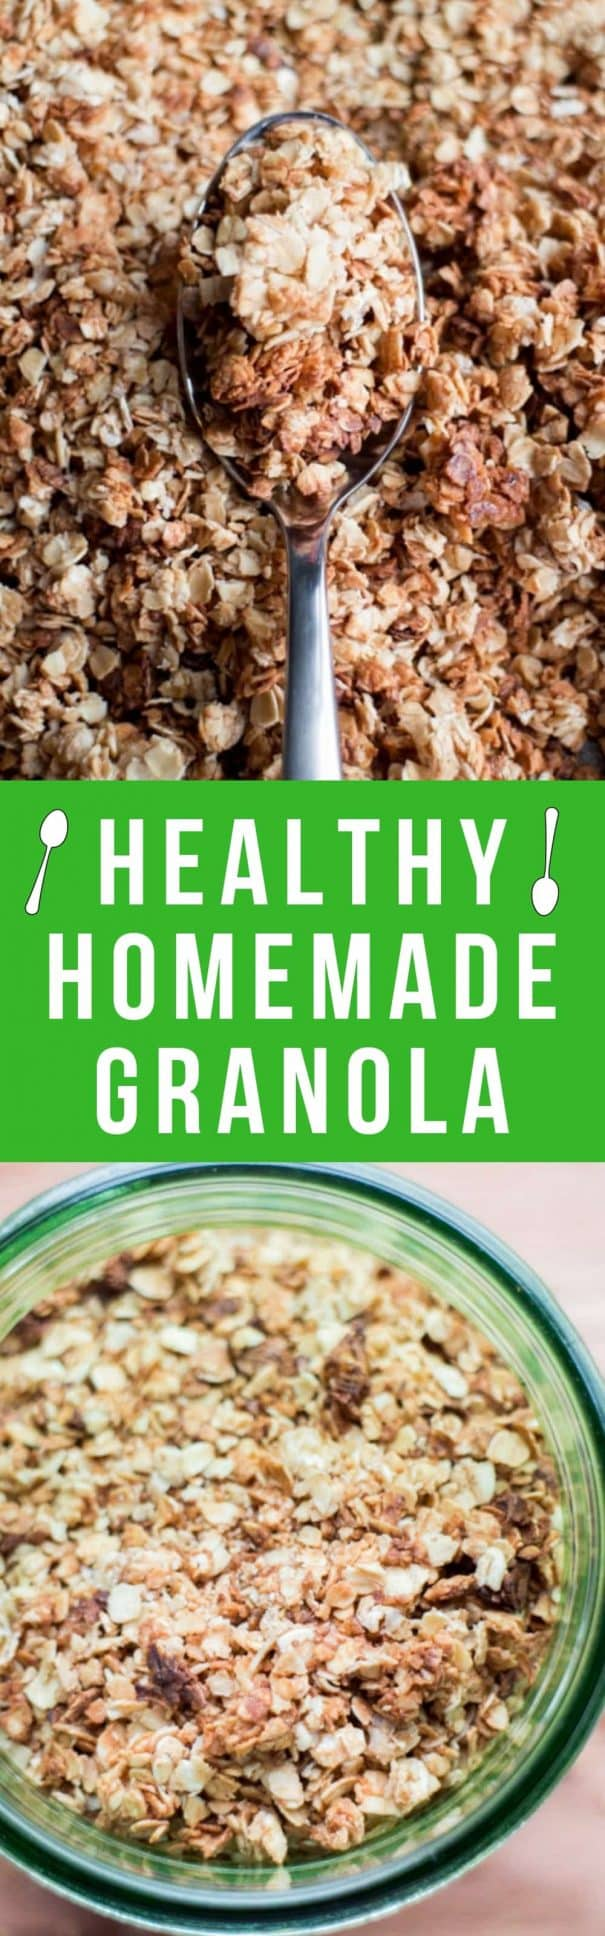 This easy Healthy Homemade Granola recipe is a favorite breakfast! Not only is it super easy to make on the stovetop, but it's perfectly crispy and versatile. Once you realize how easy this healthy homemade granola recipe is to make, you'll never buy granola in the store again! With honey, vanilla and cinnamon, this quick homemade granola recipe is a pantry staple for our family.